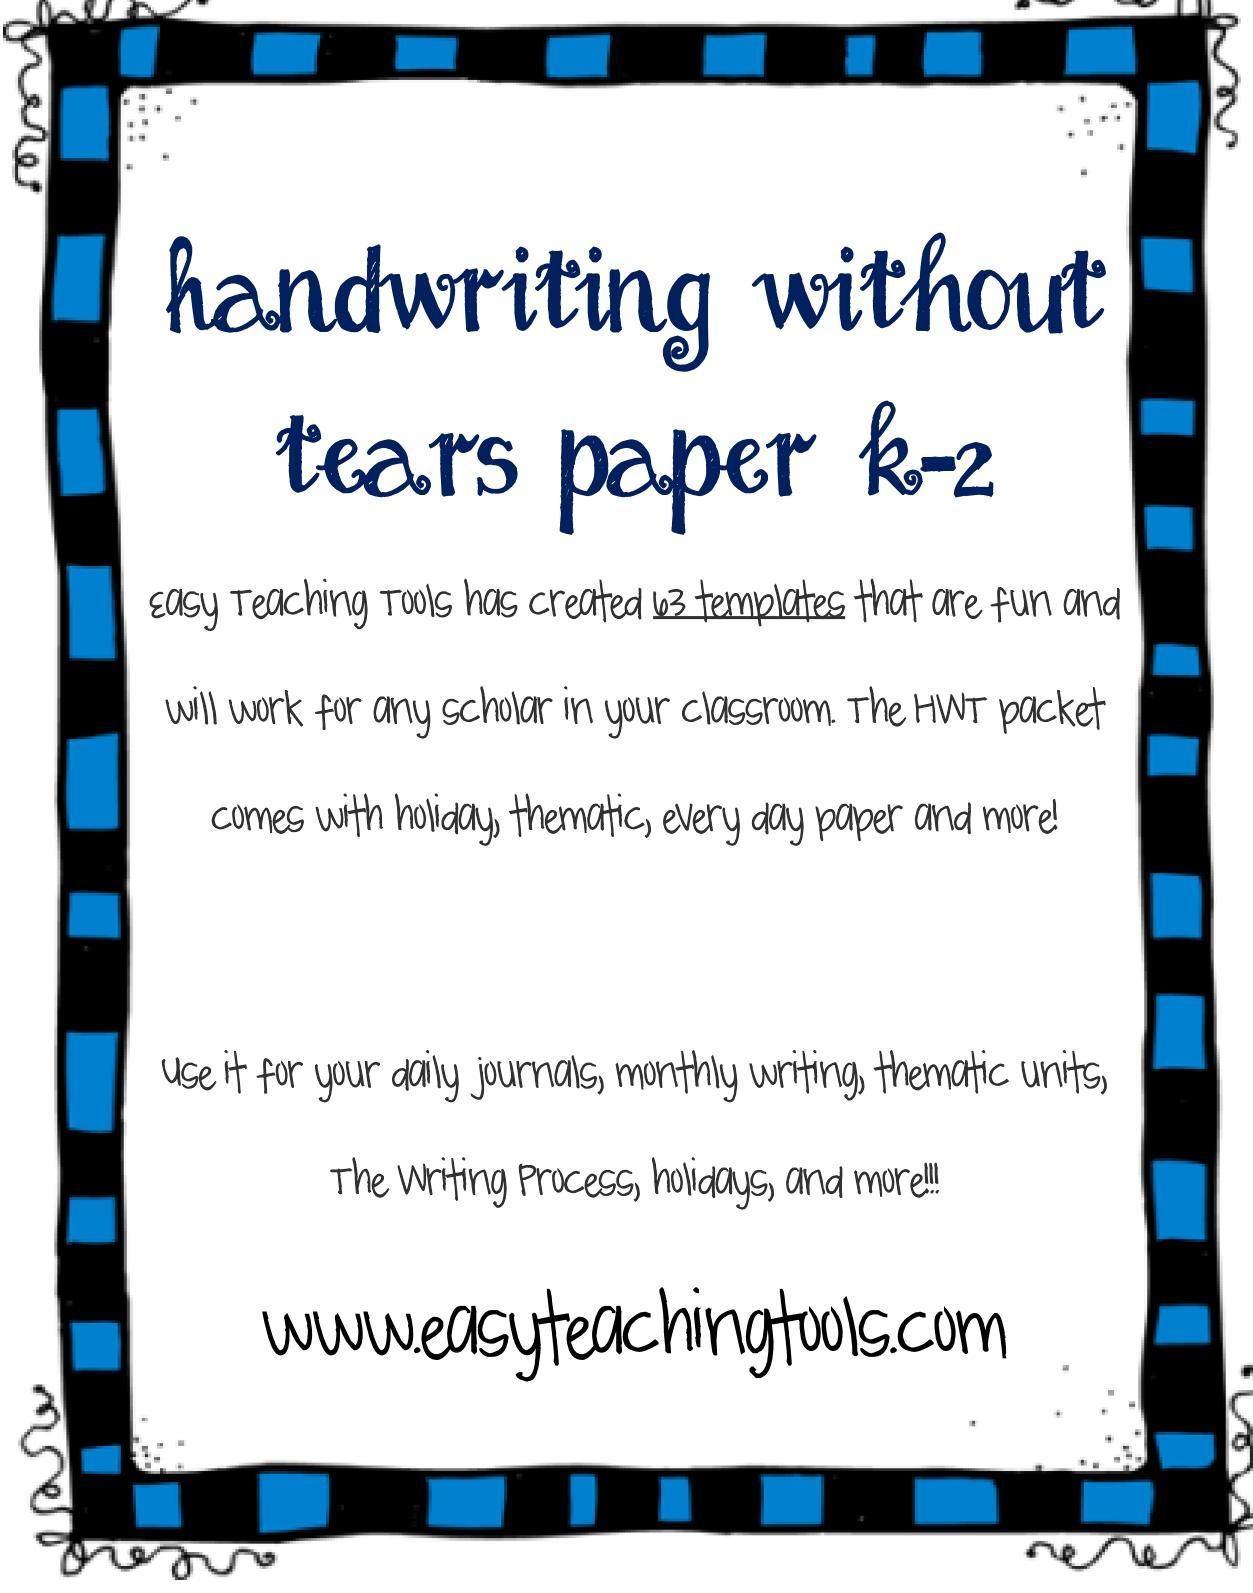 Are You Tired Of Trying To Create Handwriting Without